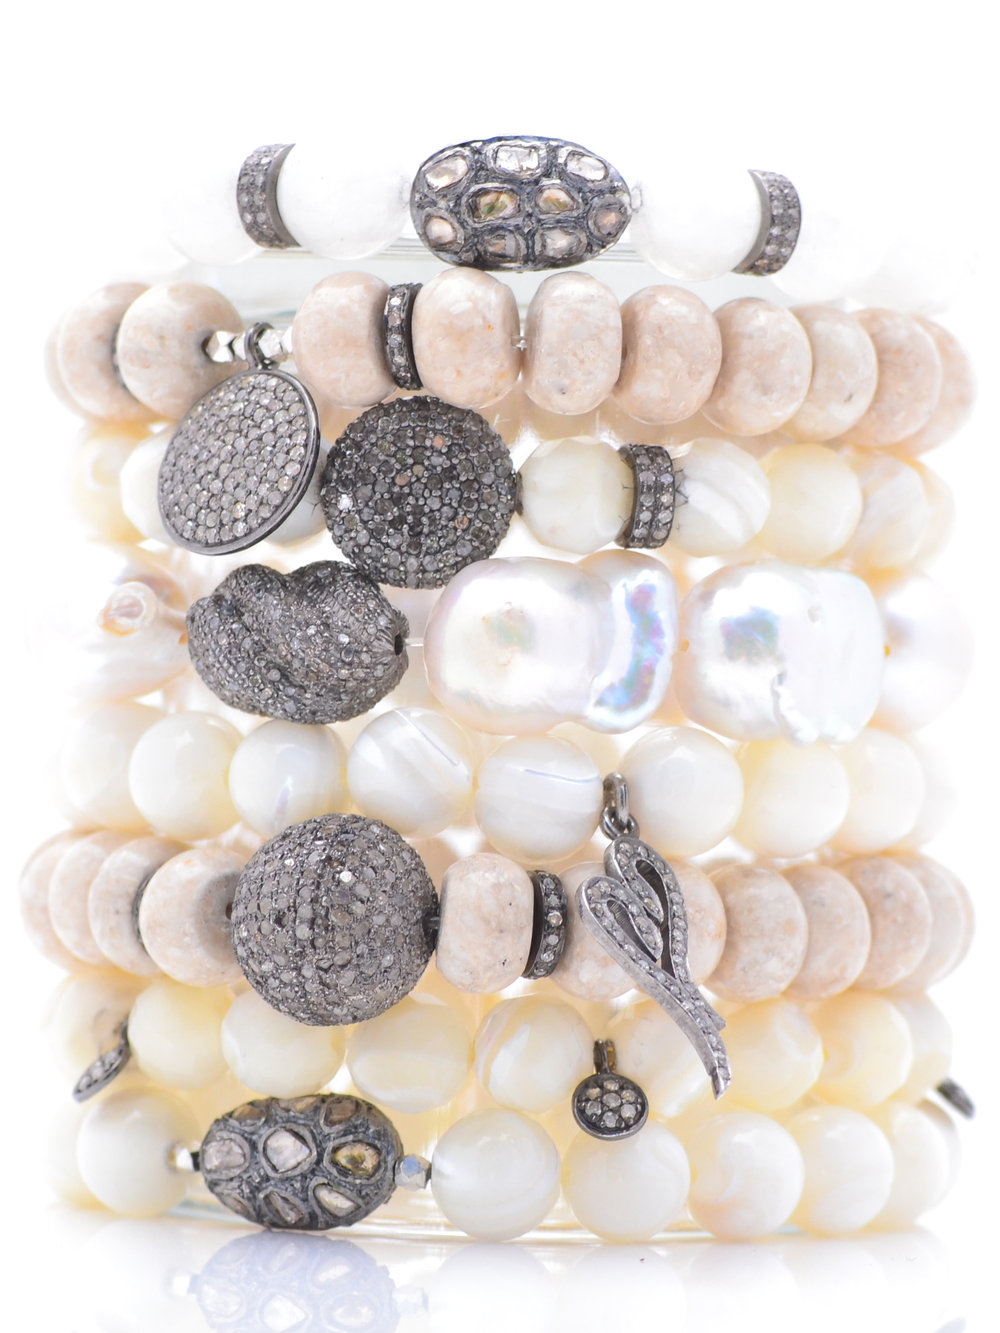 Mother of pearl, riverstone, moonstone and diamond bracelets set with diamond charms.